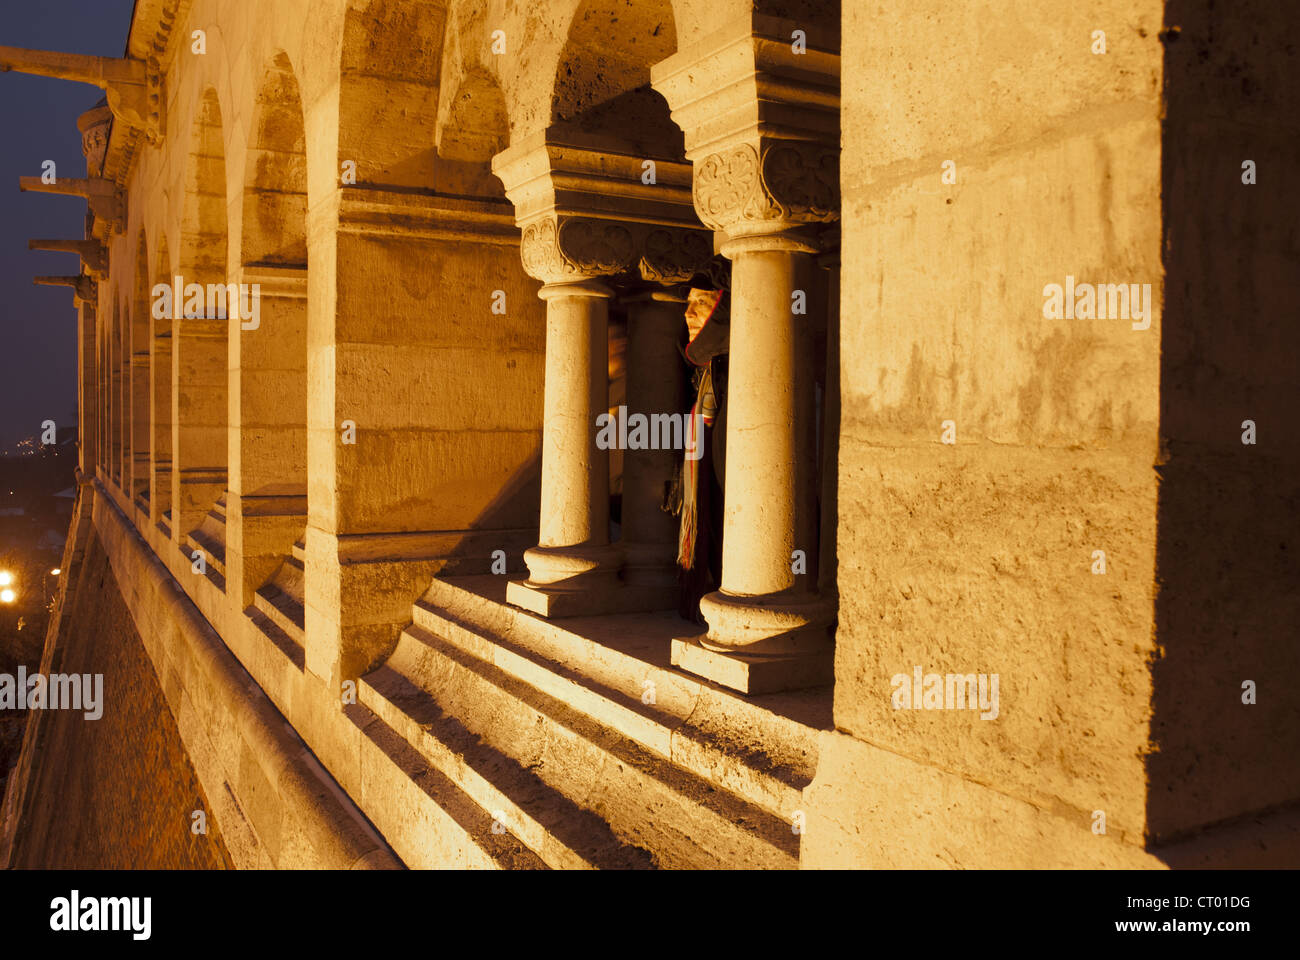 Fishermen's Bastion, built 1895 as a monument to Guild of Fishermen in Neo-Romanesque style on Castle Hill in - Stock Image